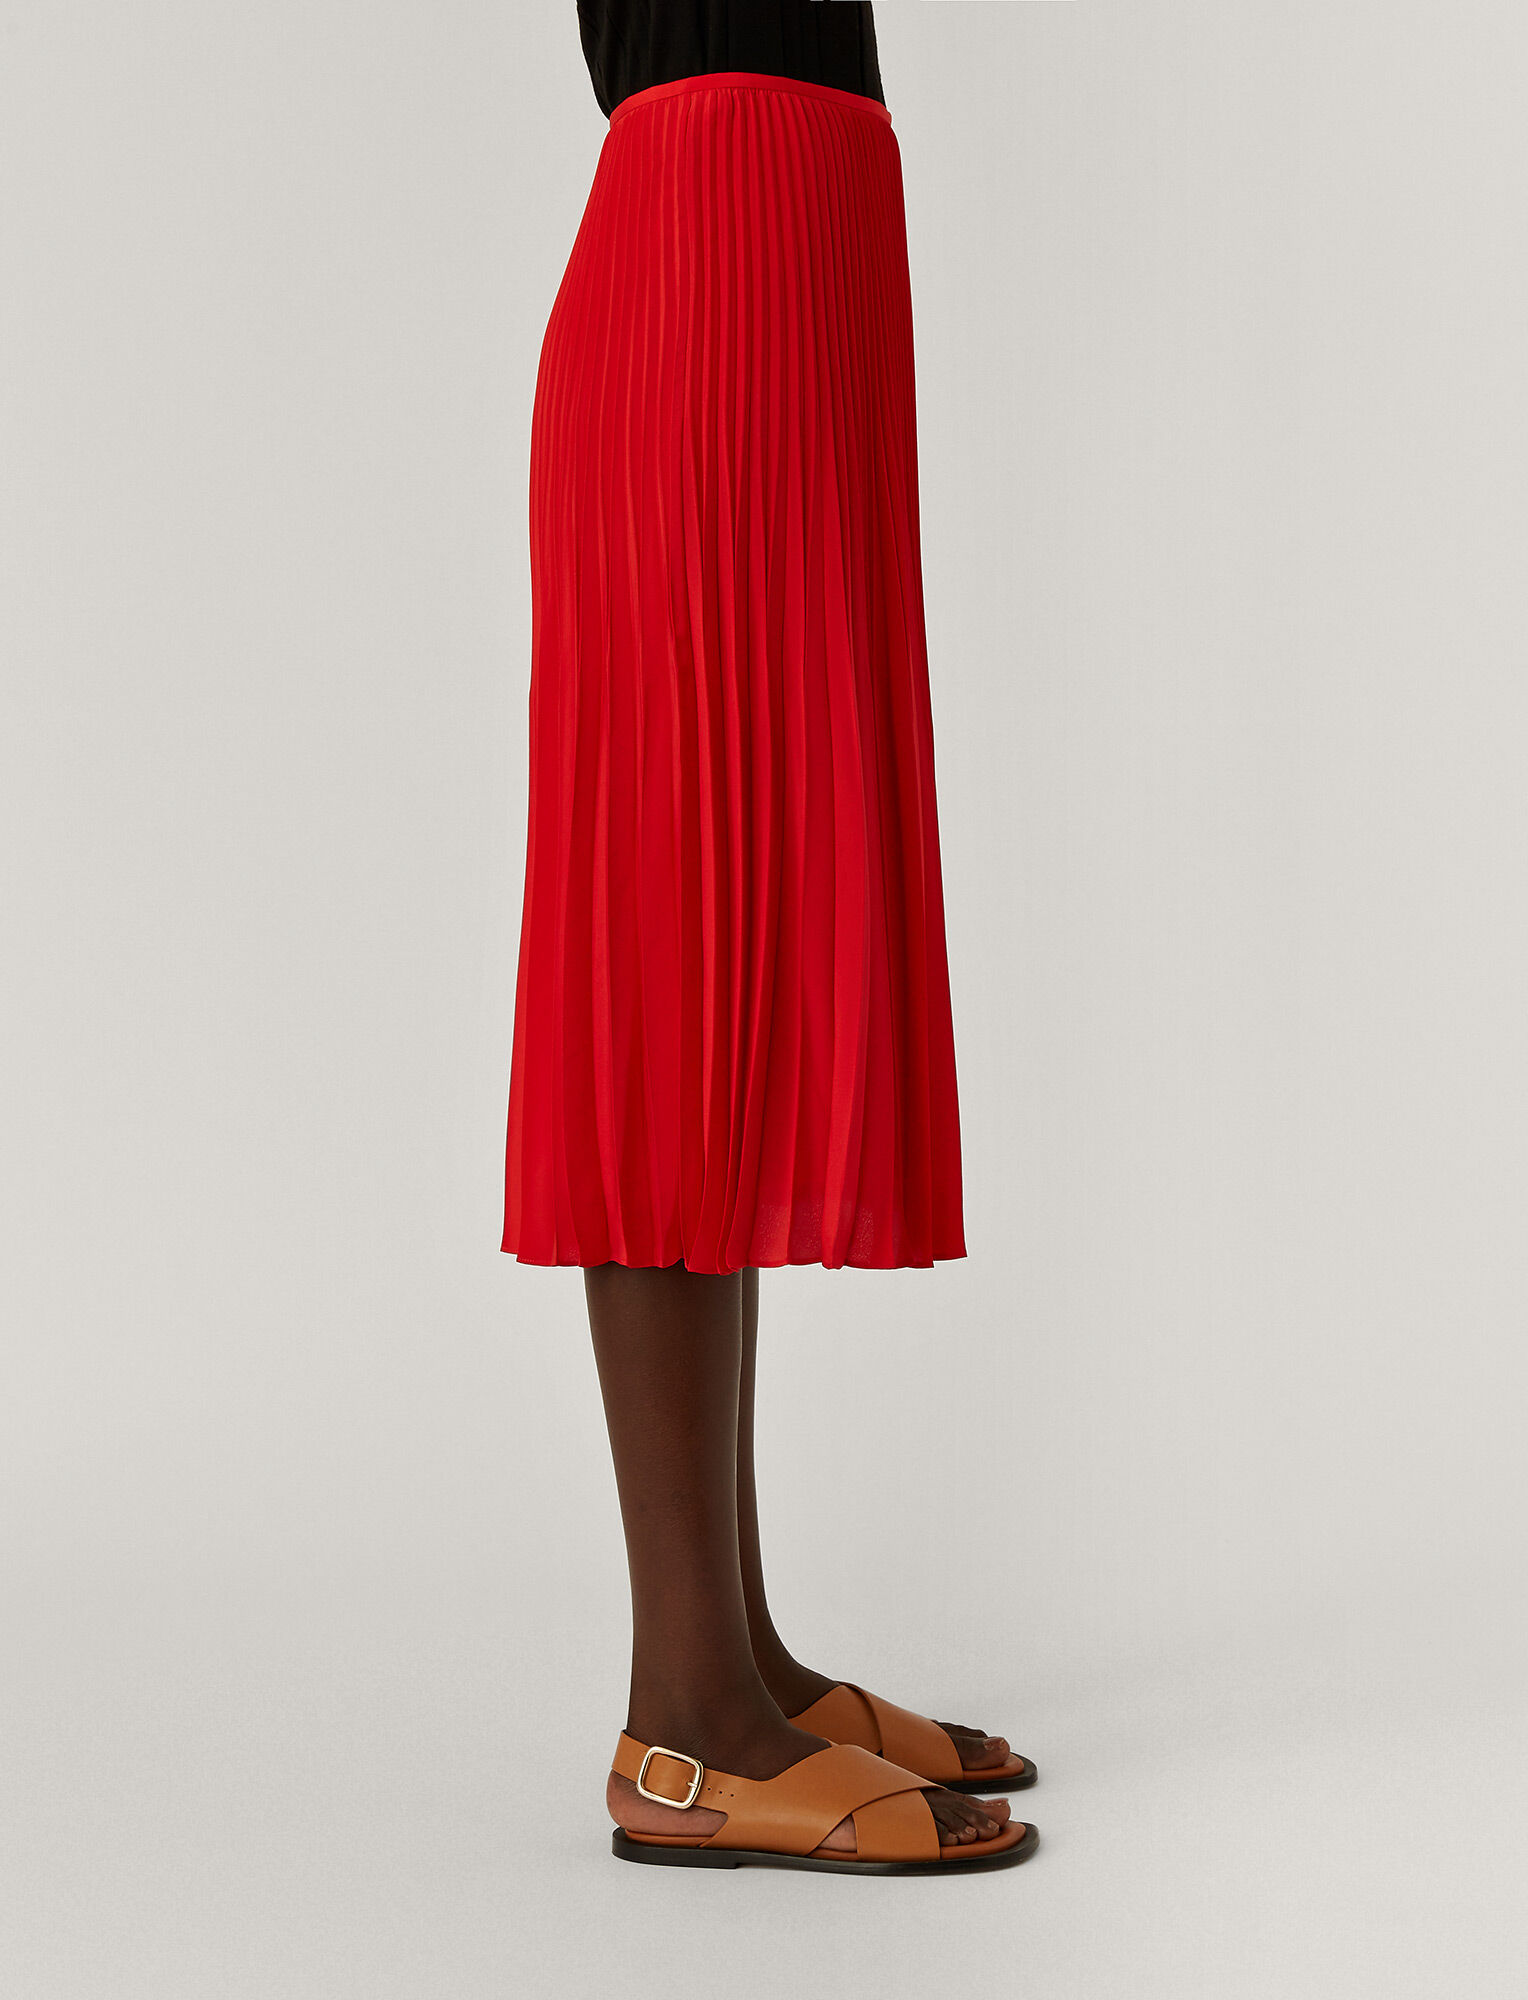 Joseph, Crepe de Chine Sorence Skirt, in FLAME